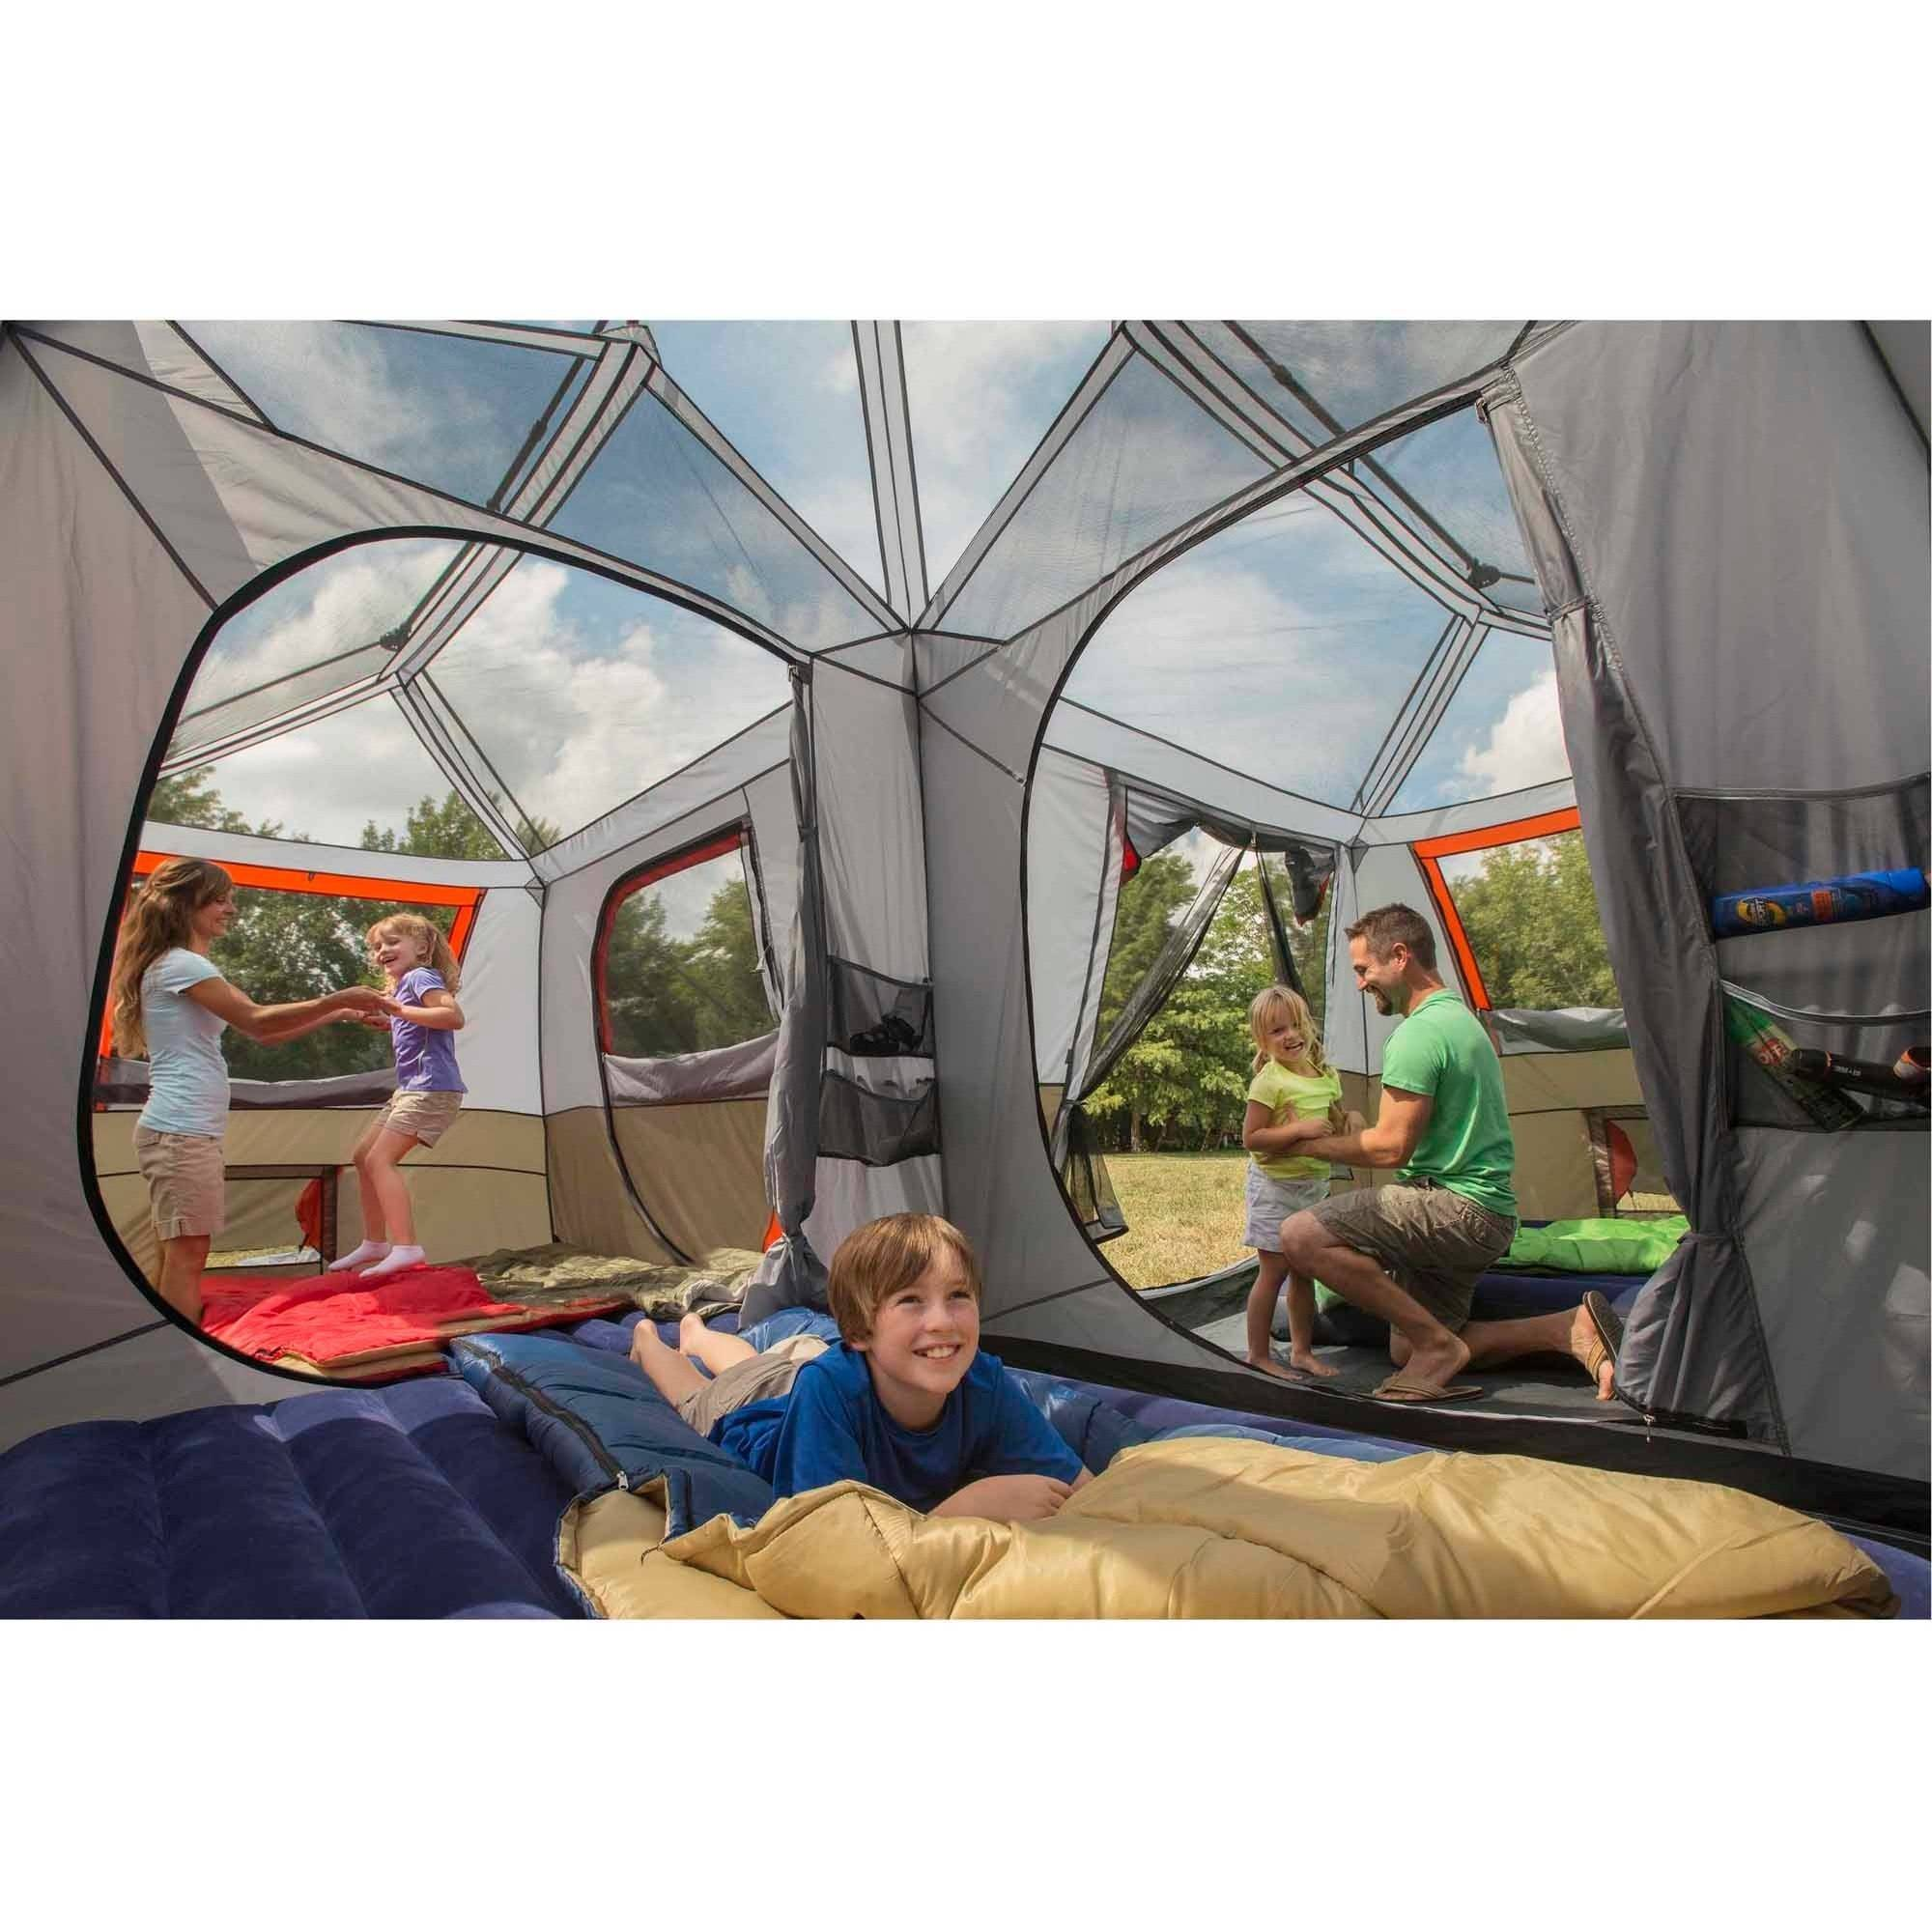 Details about Camping Tent 3 ROOMS 12 Person Shaped Comfort Cabin Instant 2  MINUTES SET UP